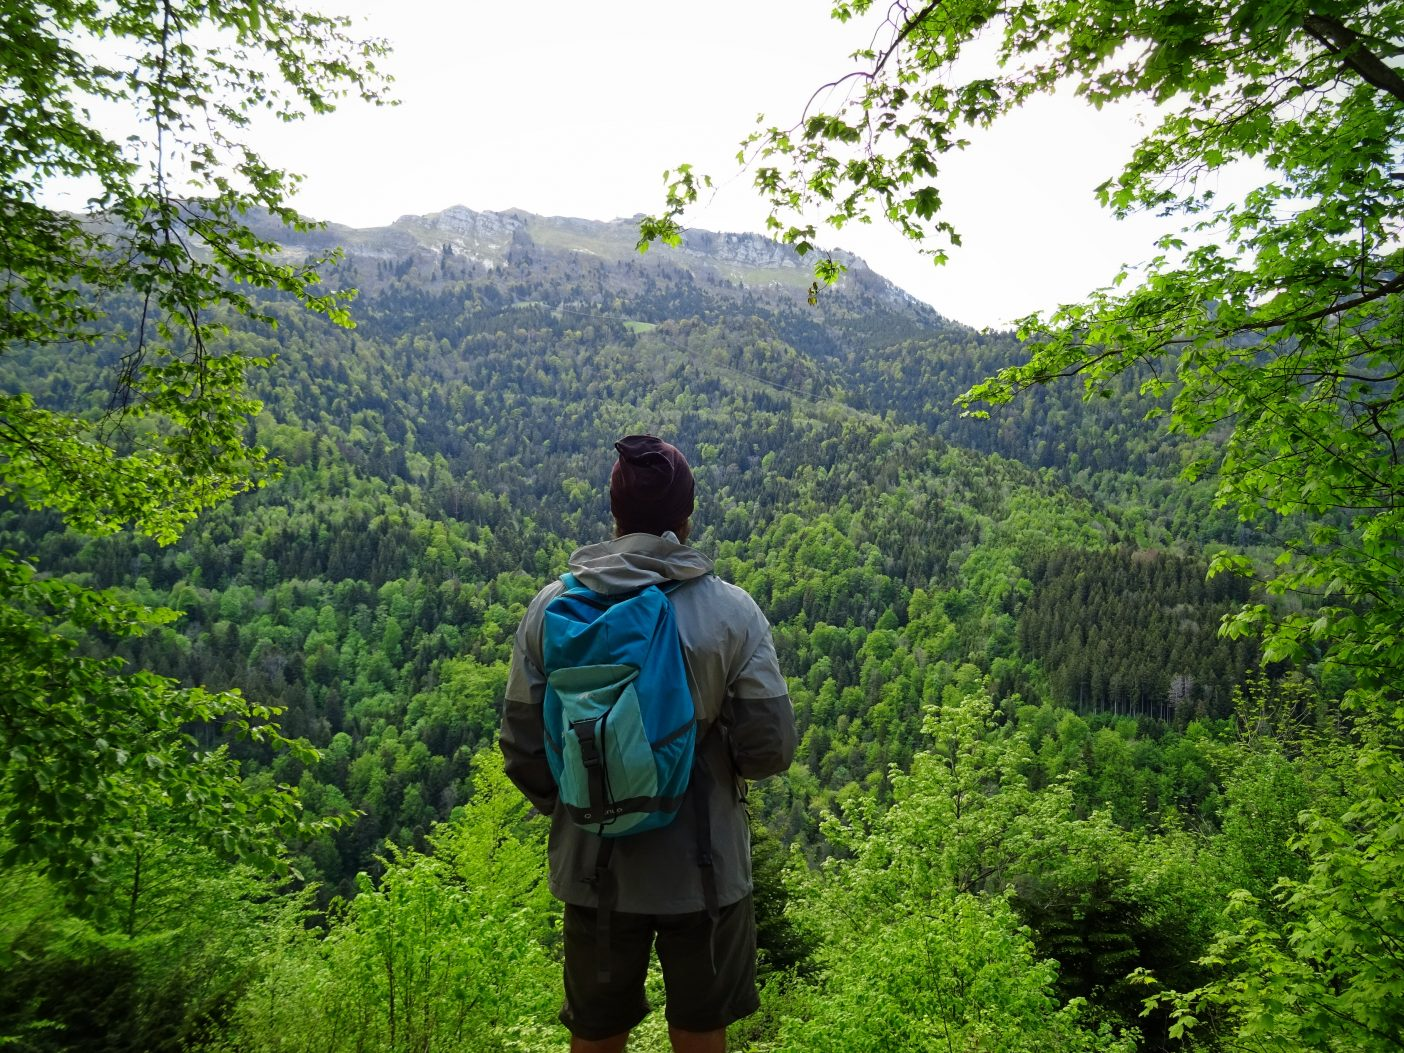 Man hiking in the outdoors